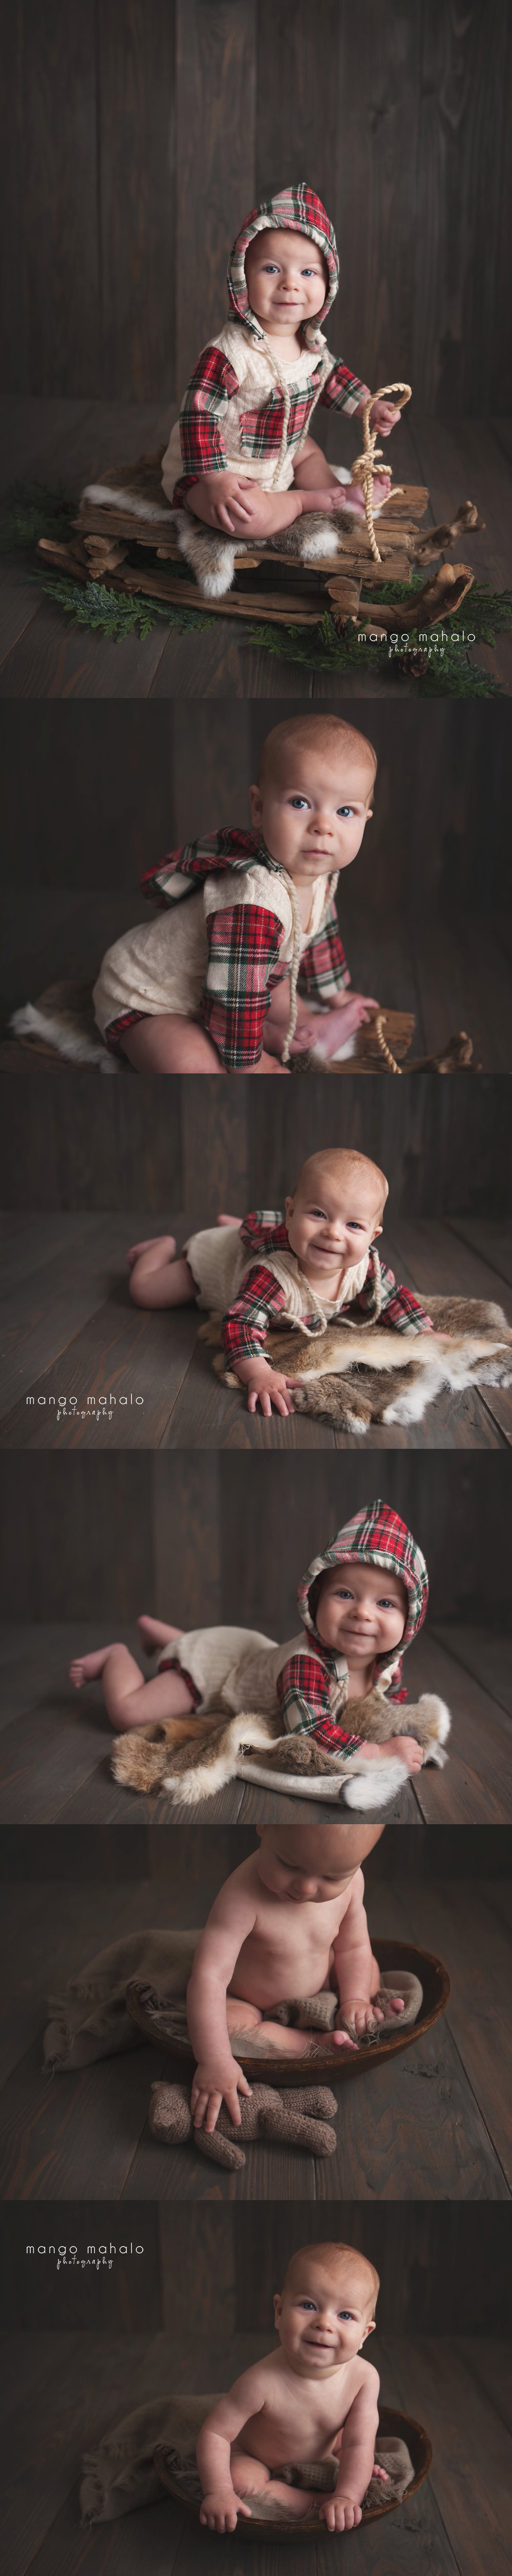 Knoxville Maternity, Newborn & Child Photographer   Mango Mahalo Photography by Michelle Anderson